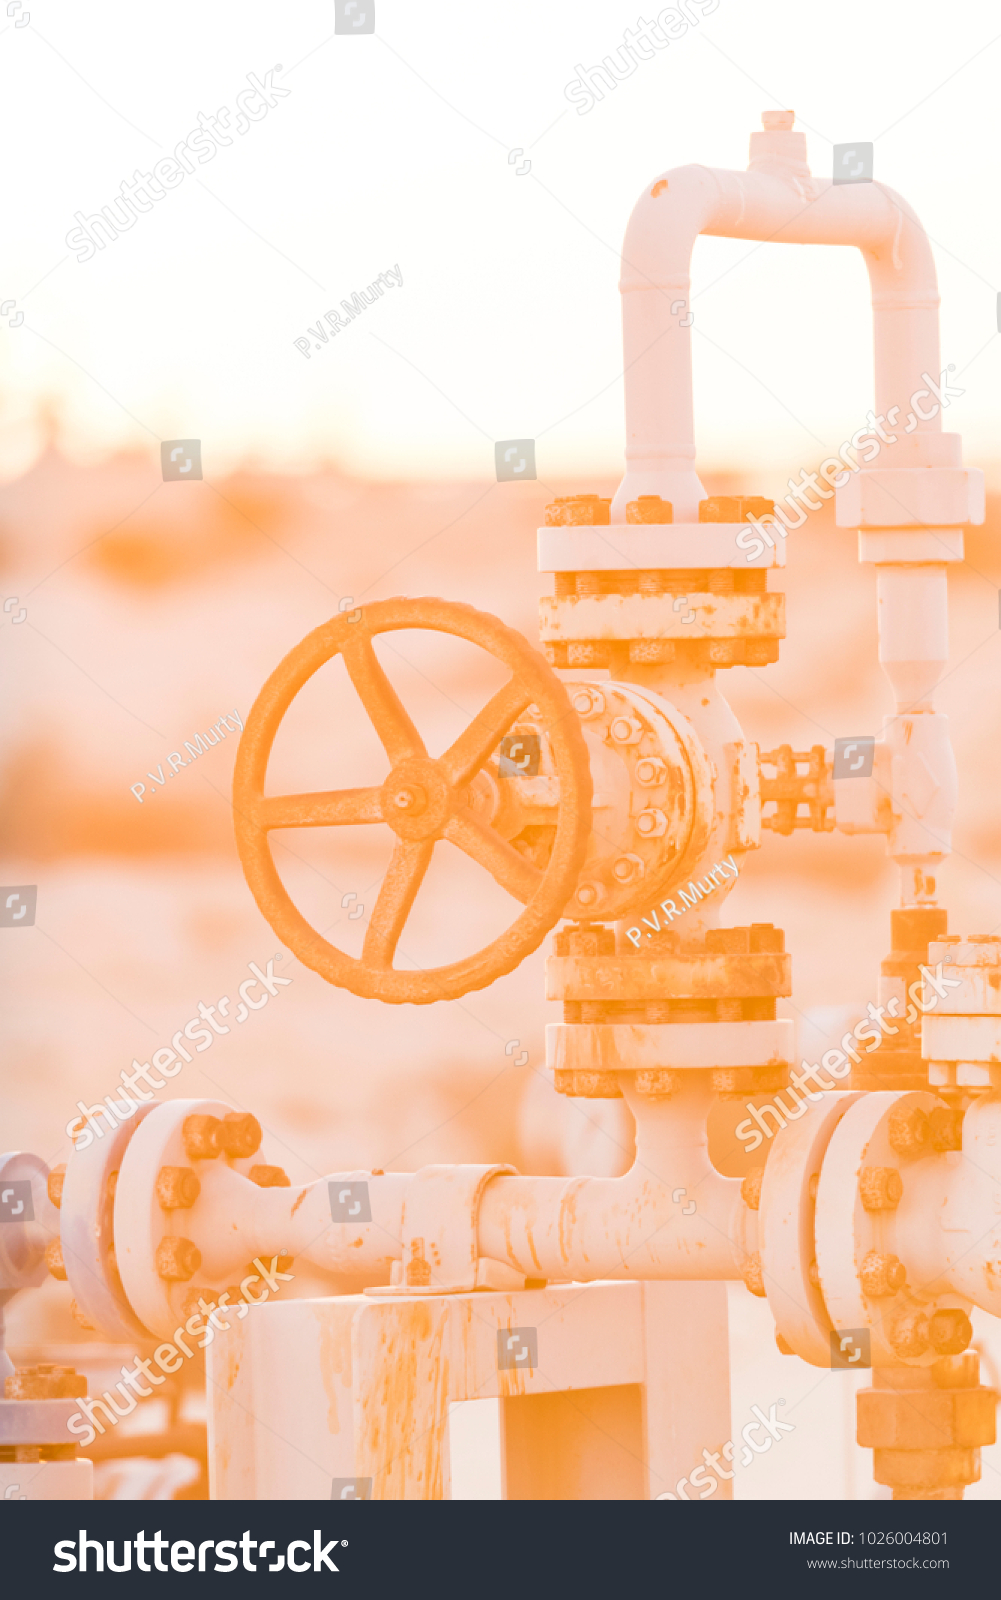 Crude oil well manifold oil field stock photo 1026004801 crude oil well manifold in the oil field biocorpaavc Gallery